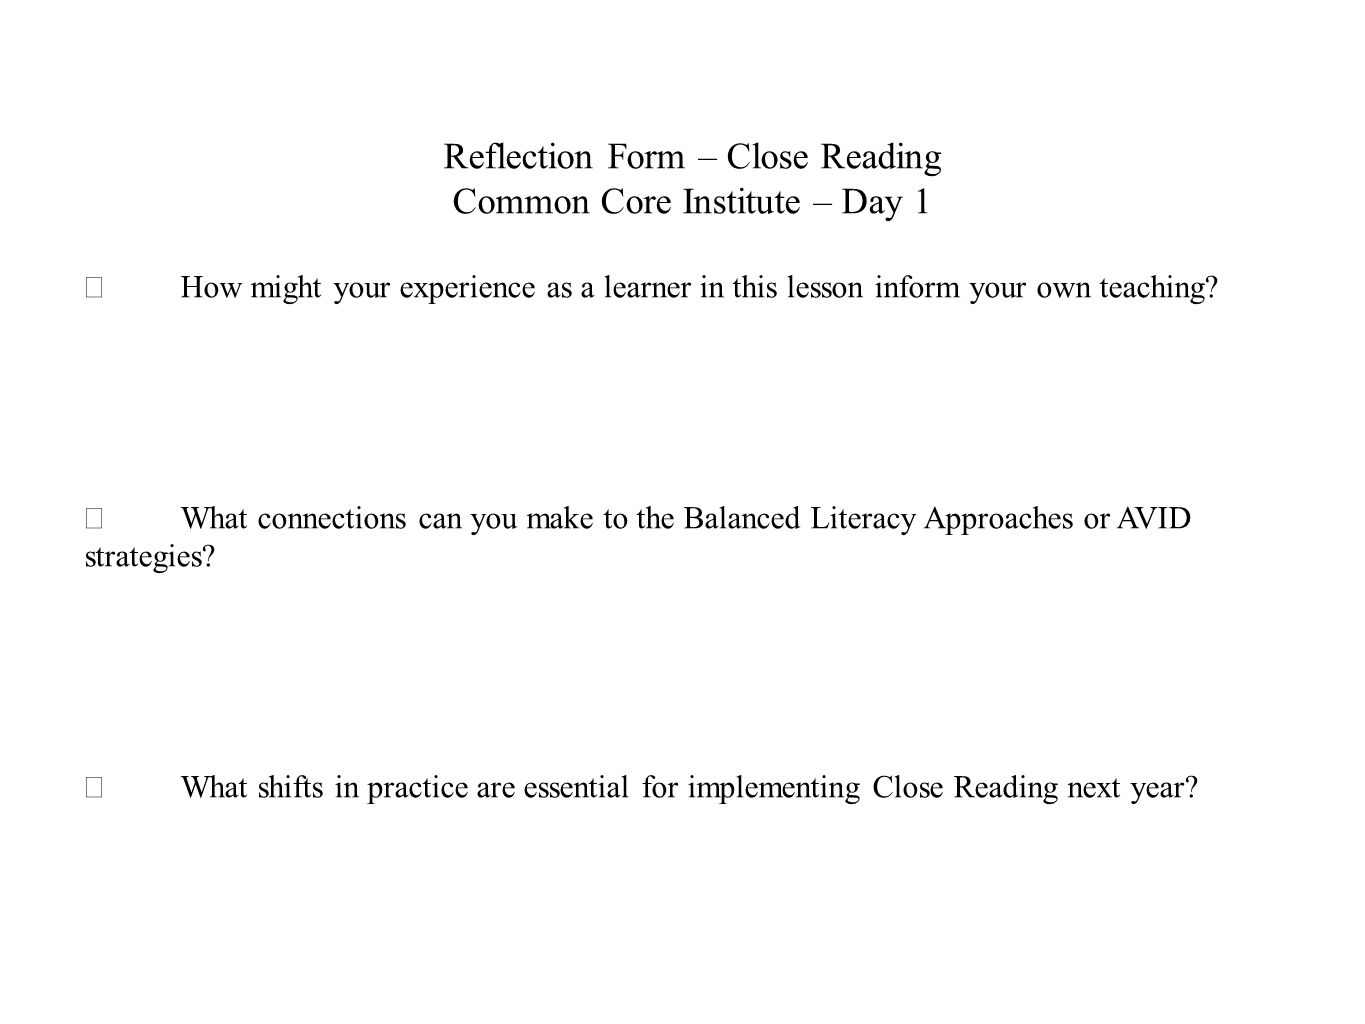 Reflection Form – Close Reading Common Core Institute – Day 1